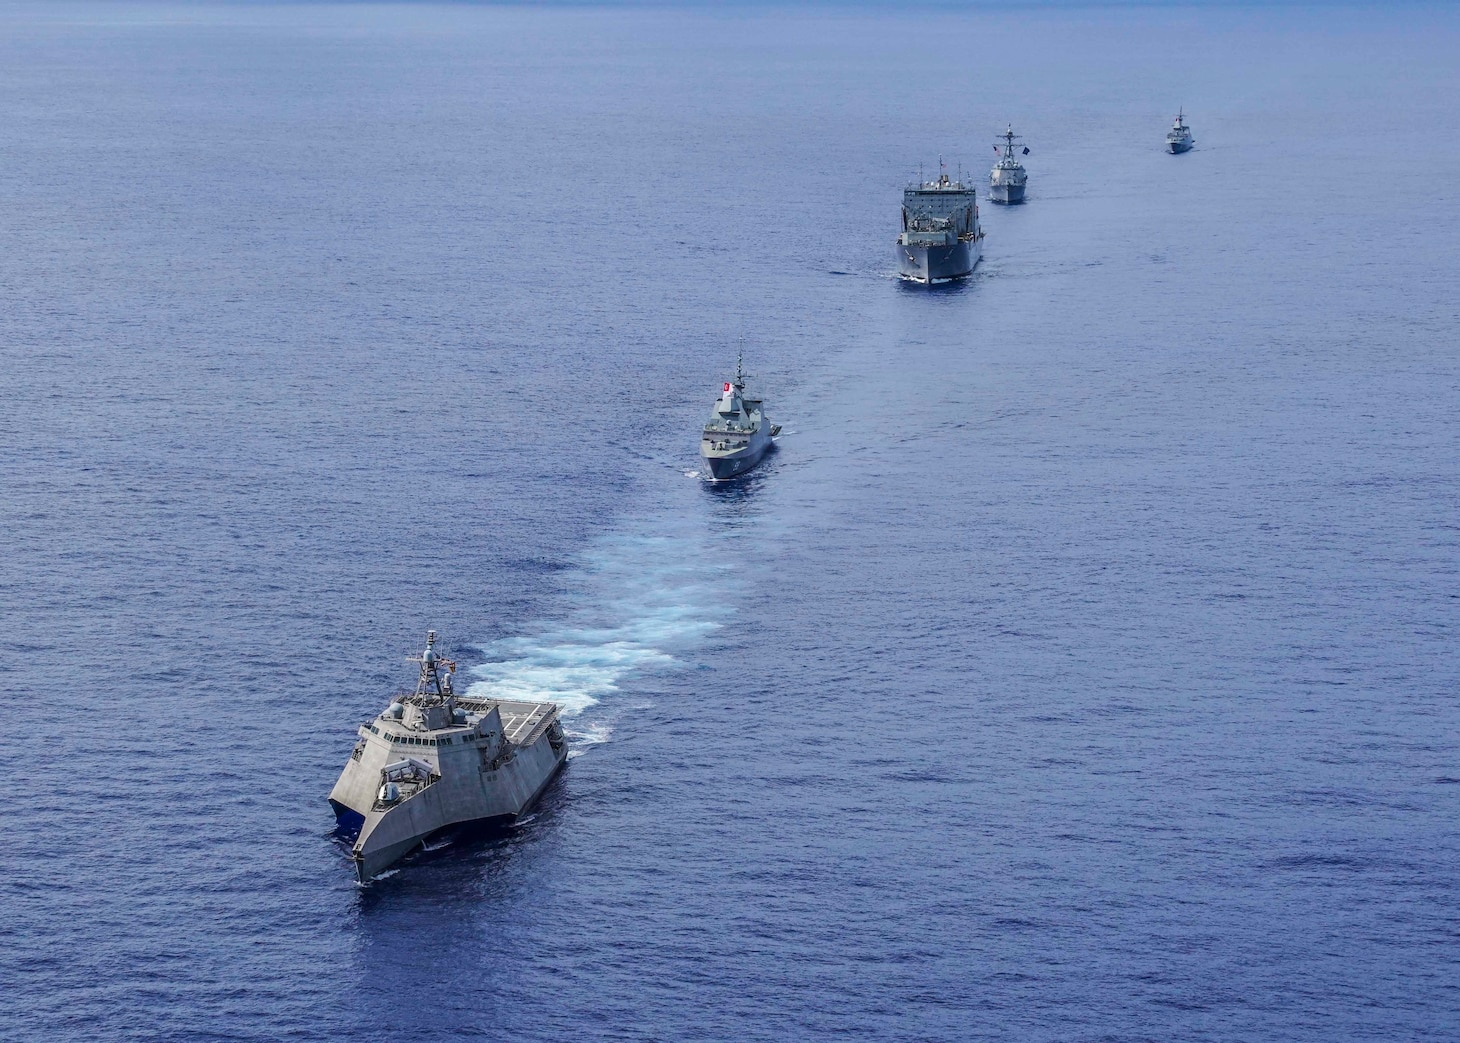 WATERS NEAR GUAM (Sept. 30, 2019) The littoral combat ship USS Gabrielle Giffords (LCS 10) leads a formation followed by Republic of Singapore Navy (RSN) frigate RSS Formidable (FFS 68), dry cargo ship USNS Amelia Earhart (T-AKE 6), guided-missile destroyer USS Momsen (DDG 92), and RSN frigate RSS Intrepid (FFS 69) during a photo exercise (PHOTOEX) in support of Exercise Pacific Griffin 2019. Pacific Griffin is a biennial exercise conducted in the waters near Guam aimed at enhancing combined proficiency at sea while strengthening relationships between the U.S. and Republic of Singapore navies.